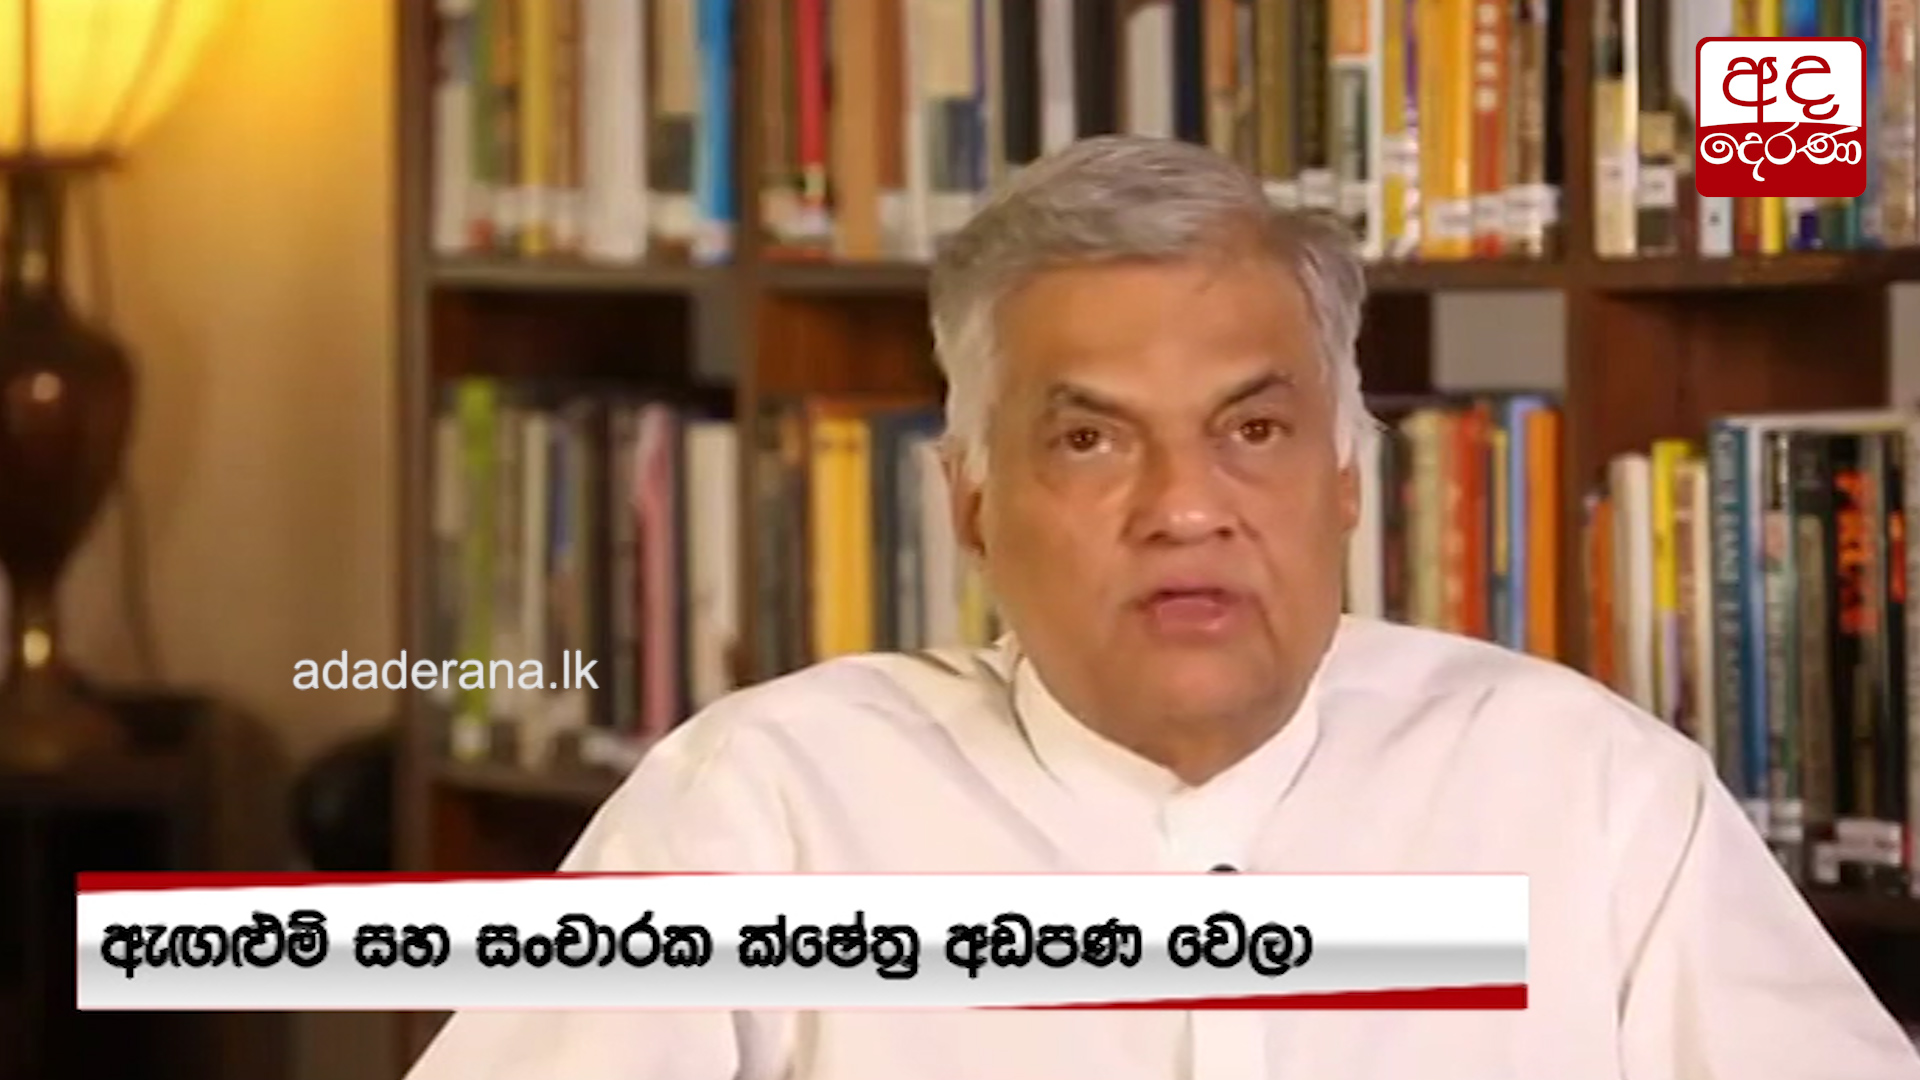 Special statement from Ranil Wickremesinghe